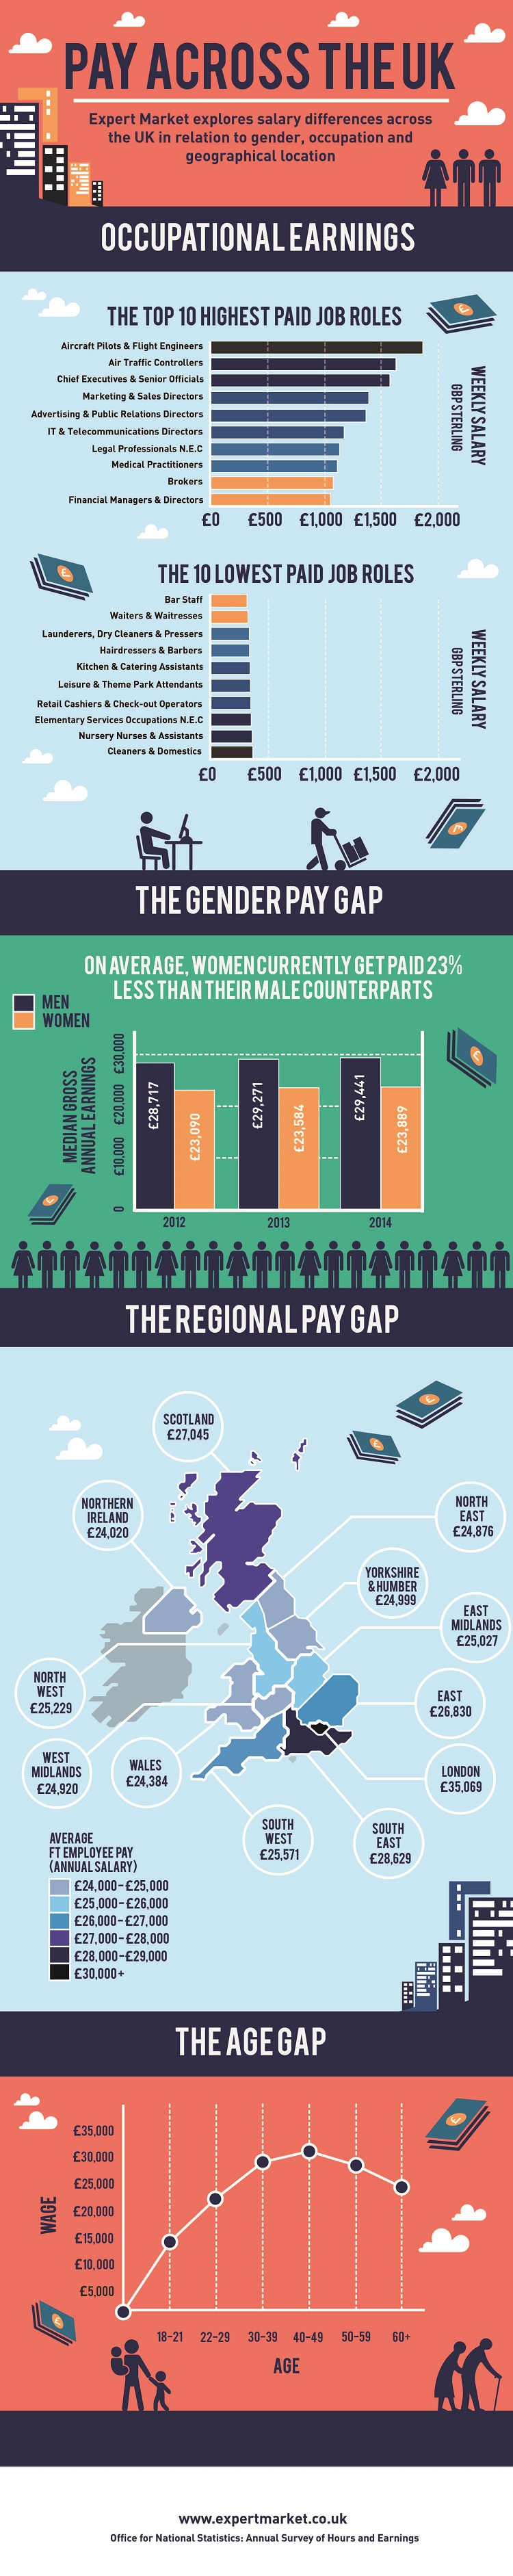 age pay across uk